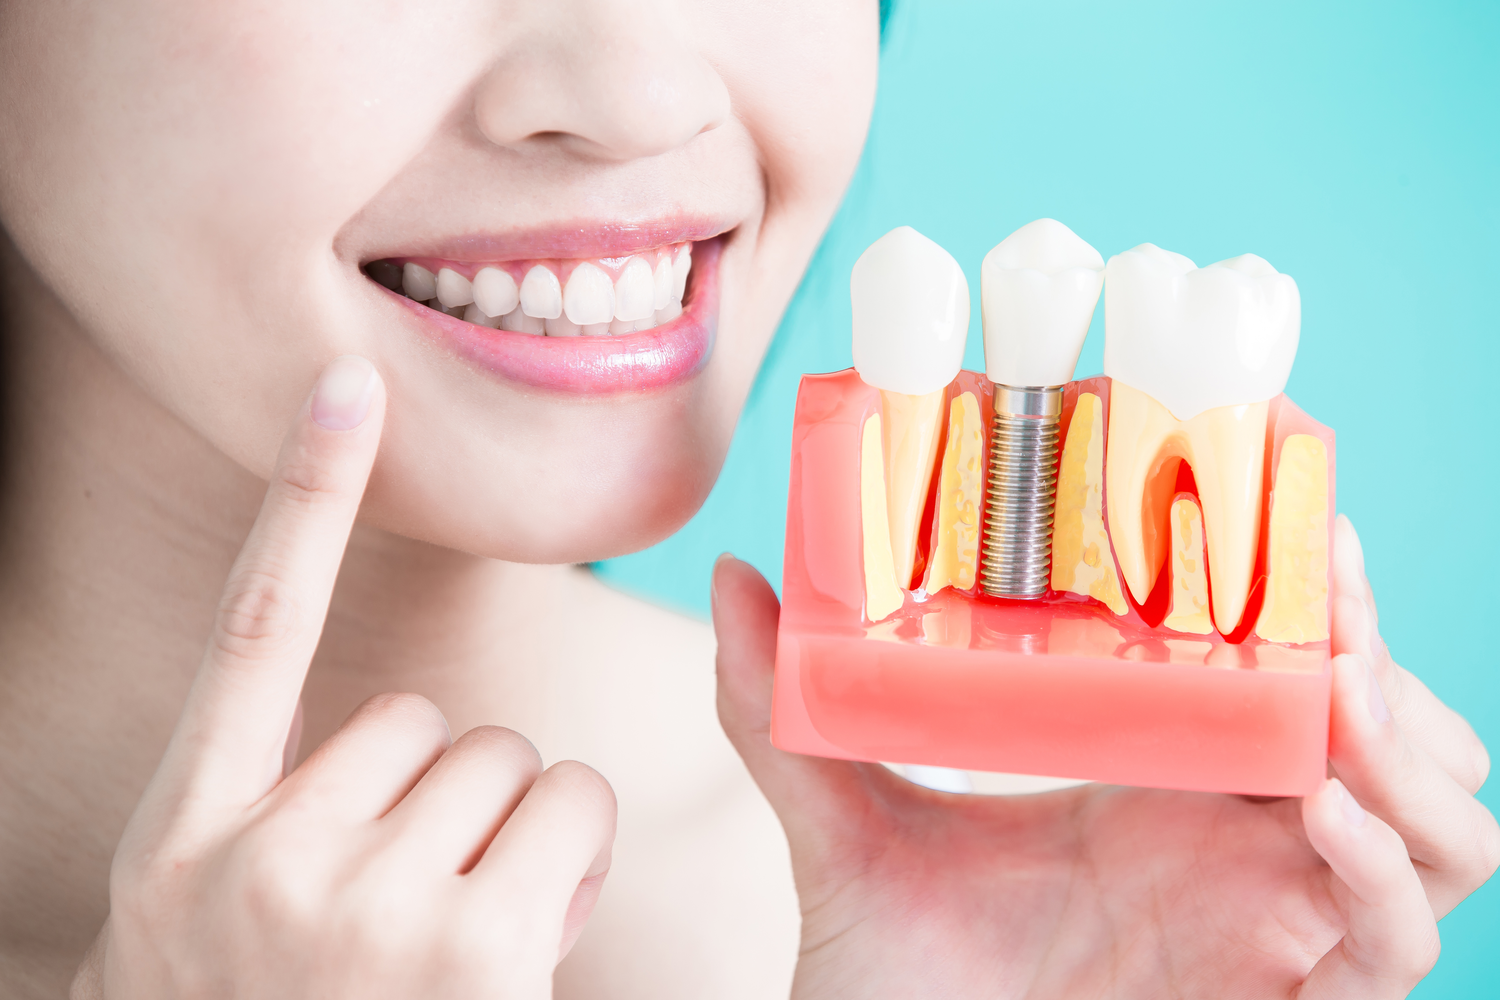 Why You Should Replace Dentures with Dental Implants